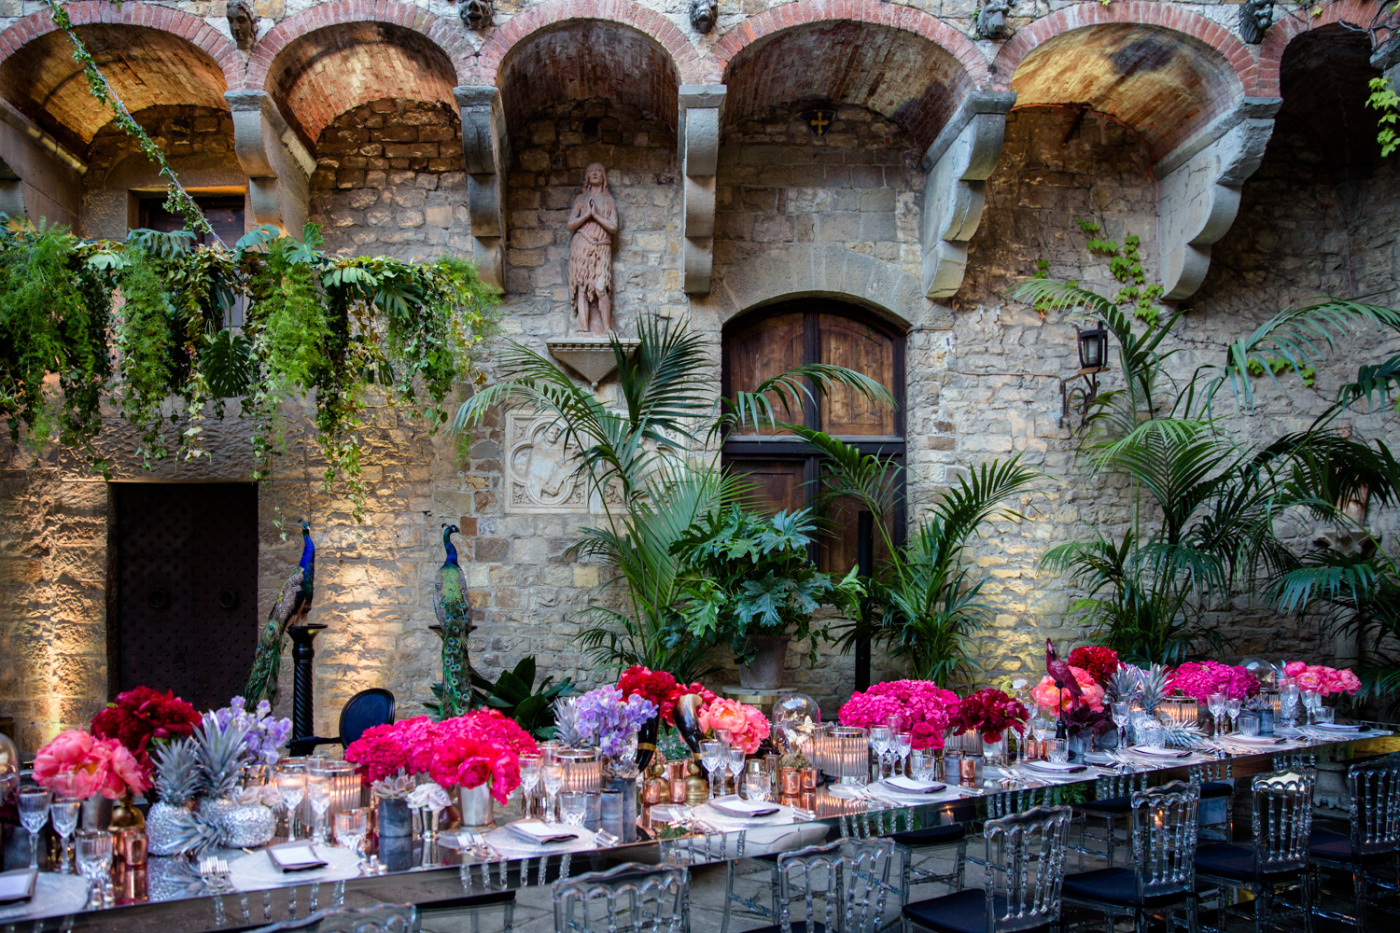 Long rectangular table with plants and flowers with red and fuxia